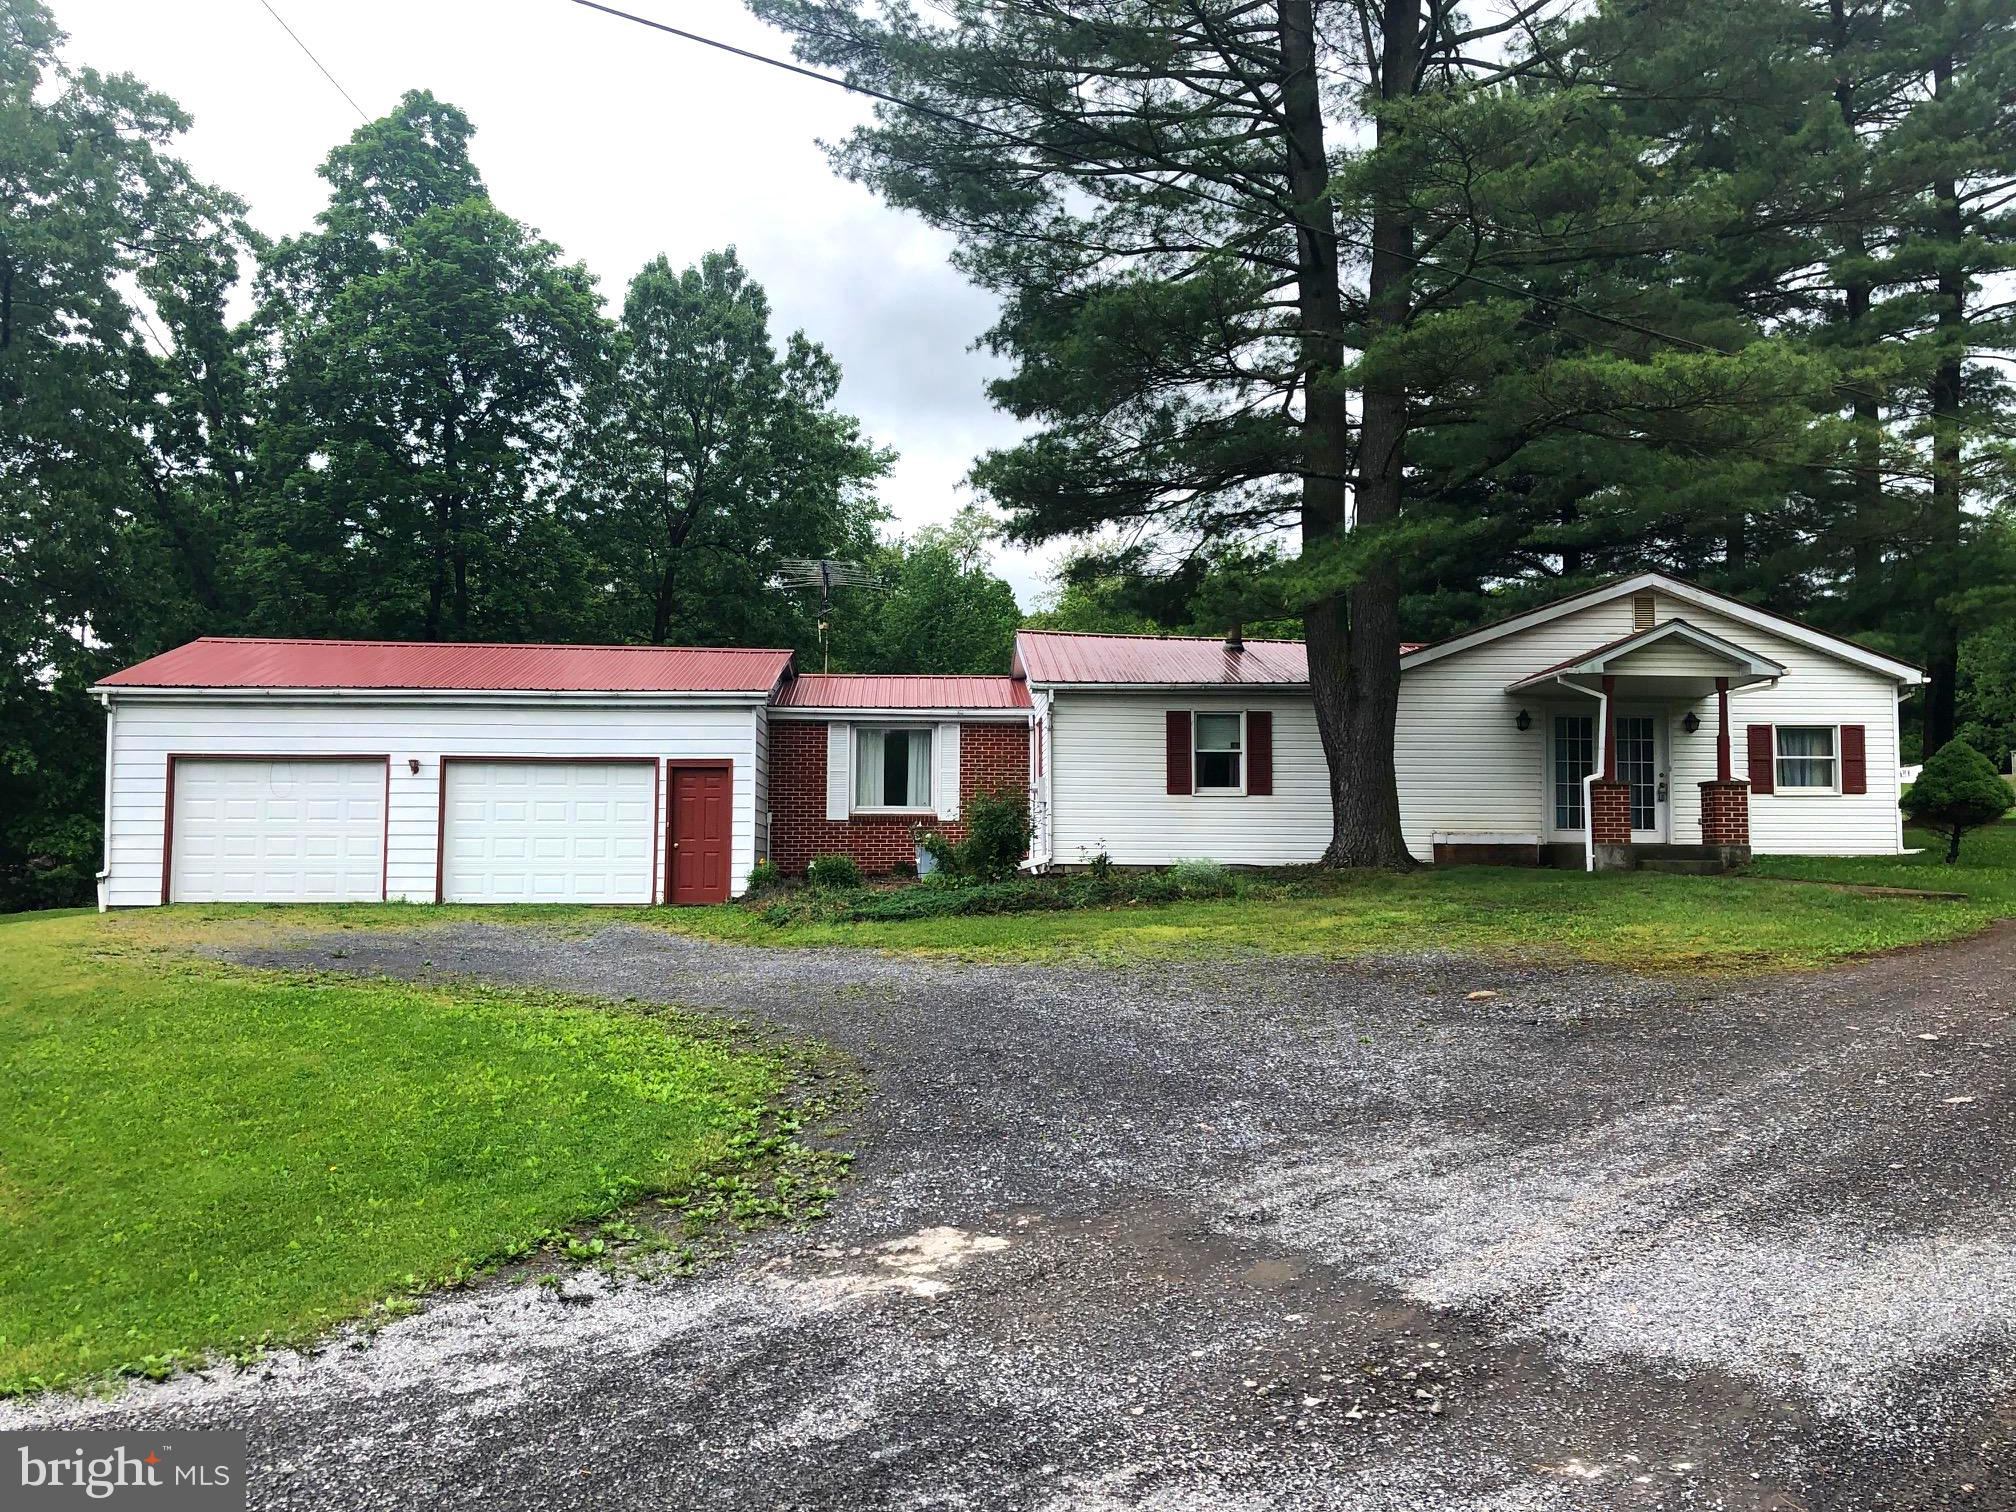 14642 Shady Pine Road, Willow Hill, PA 17271